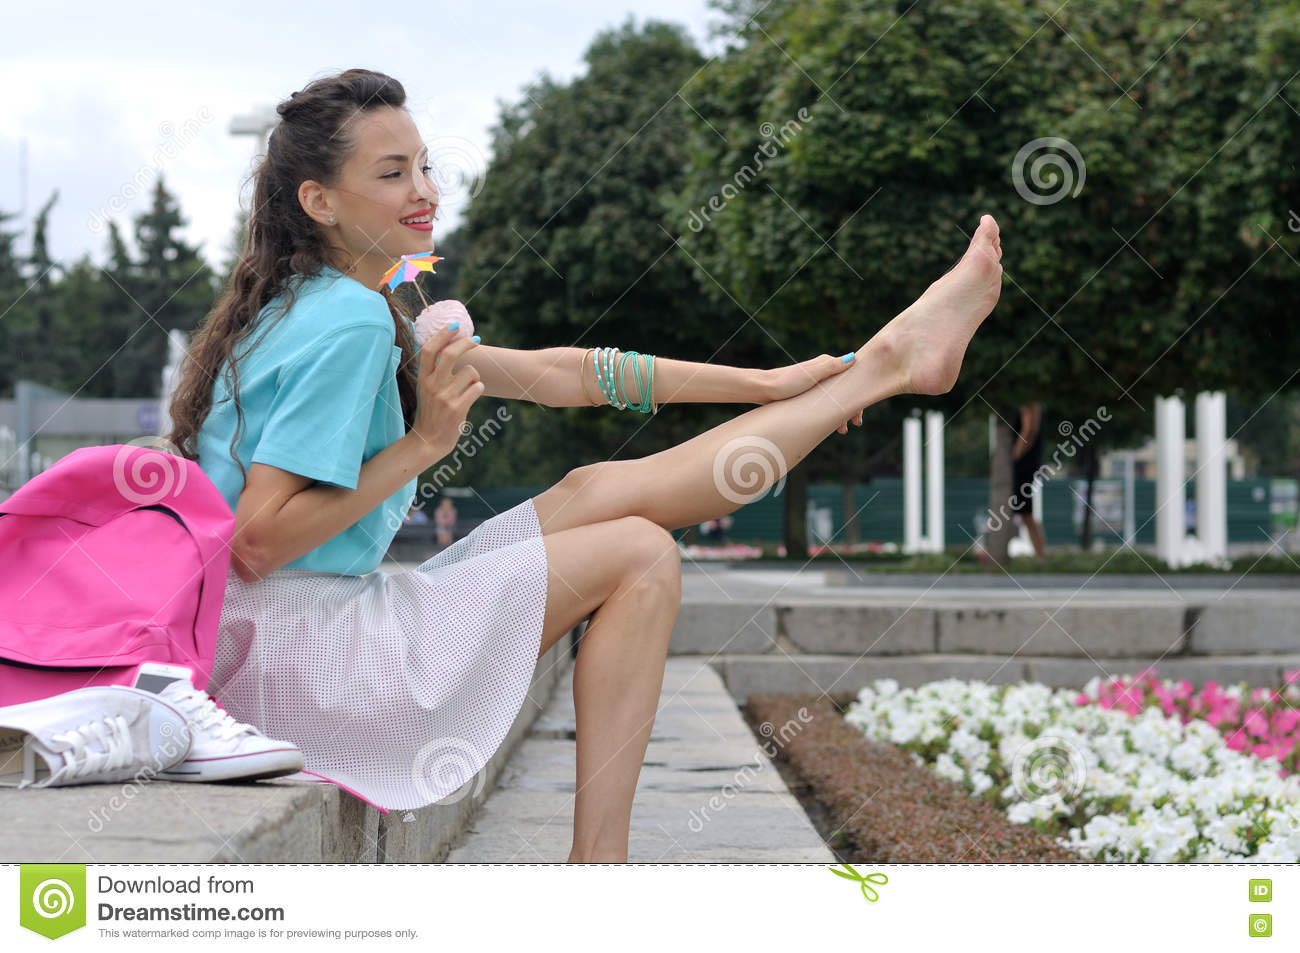 https://thumbs.dreamstime.com/z/girl-sits-stairs-holding-her-leg-nearby-shoes-eats-marshmallows-76559680.jpg